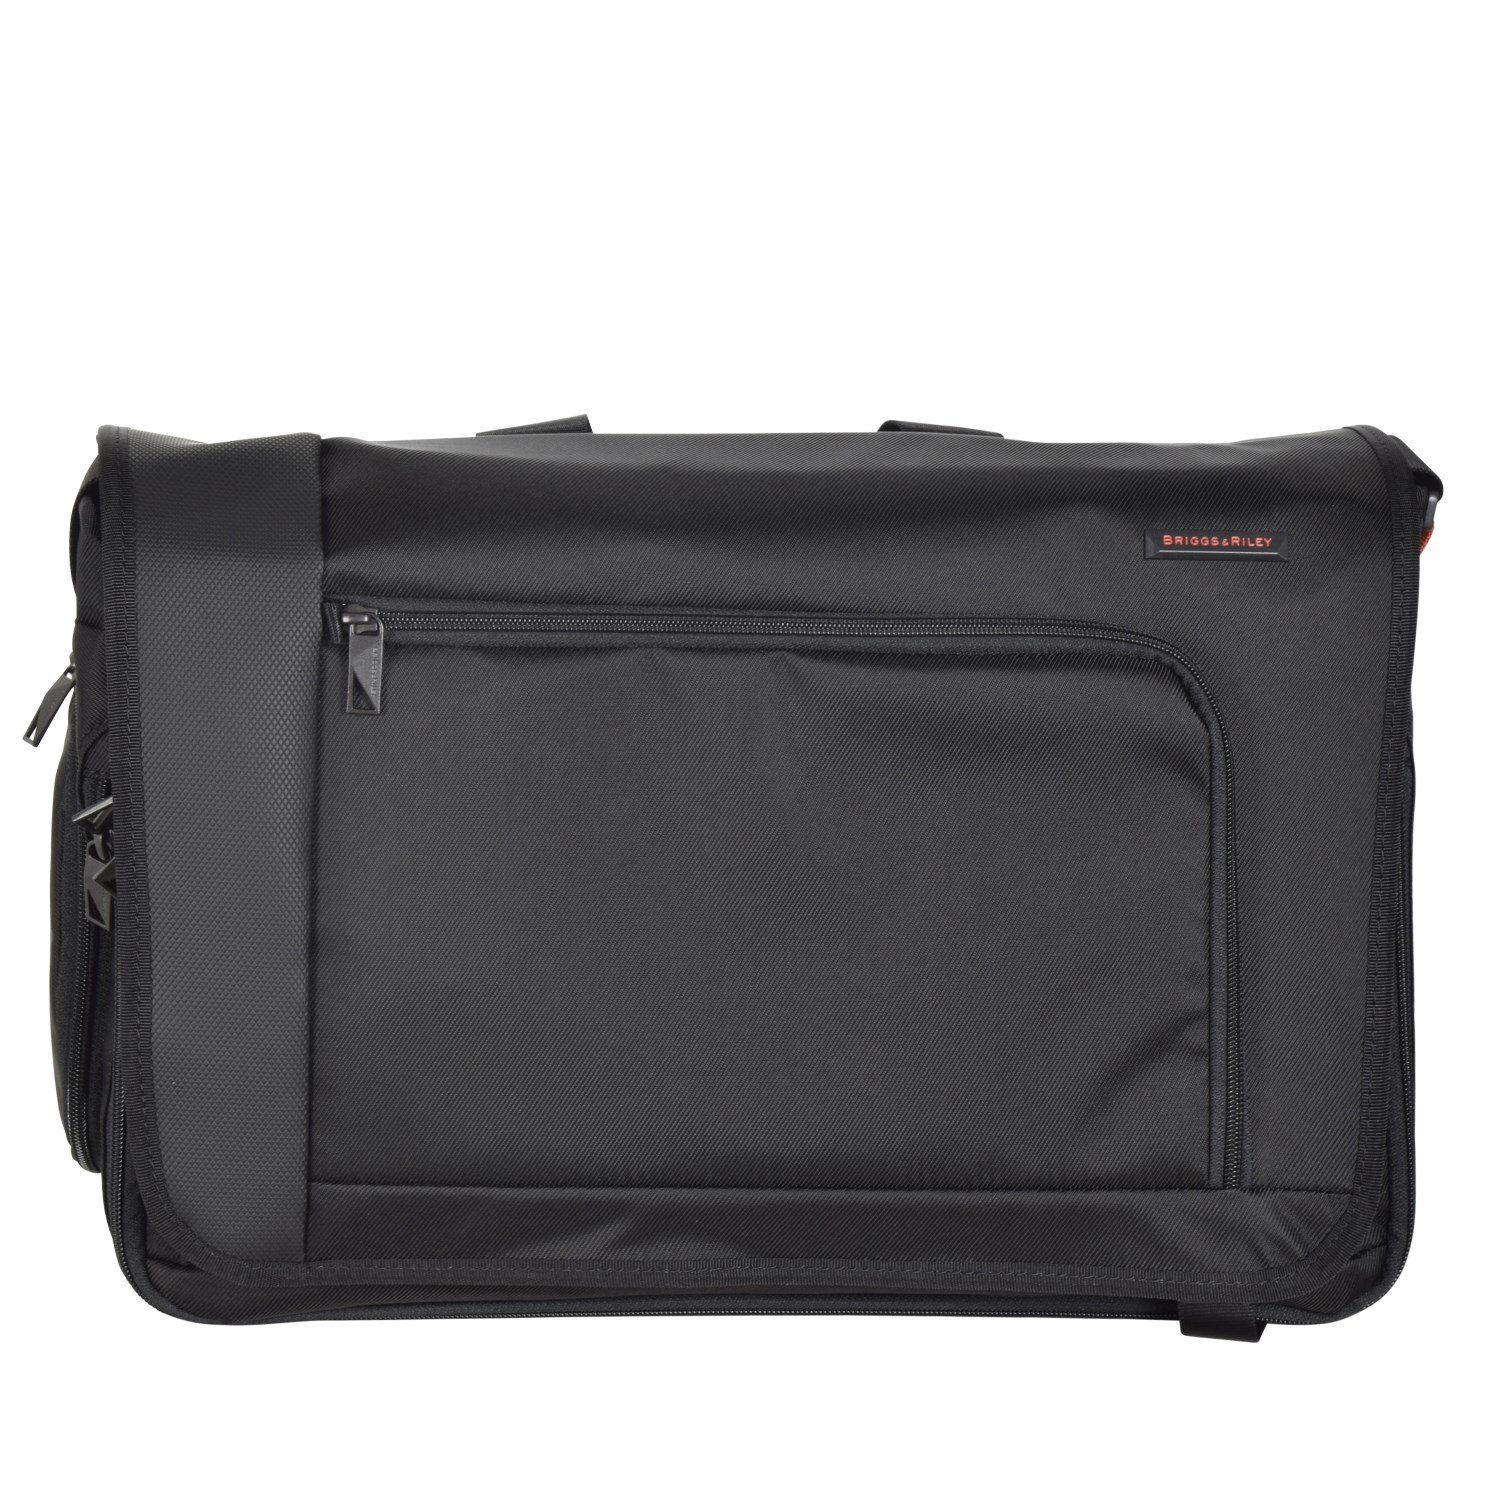 Briggs&Riley Verb Messenger 44 cm Laptopfach